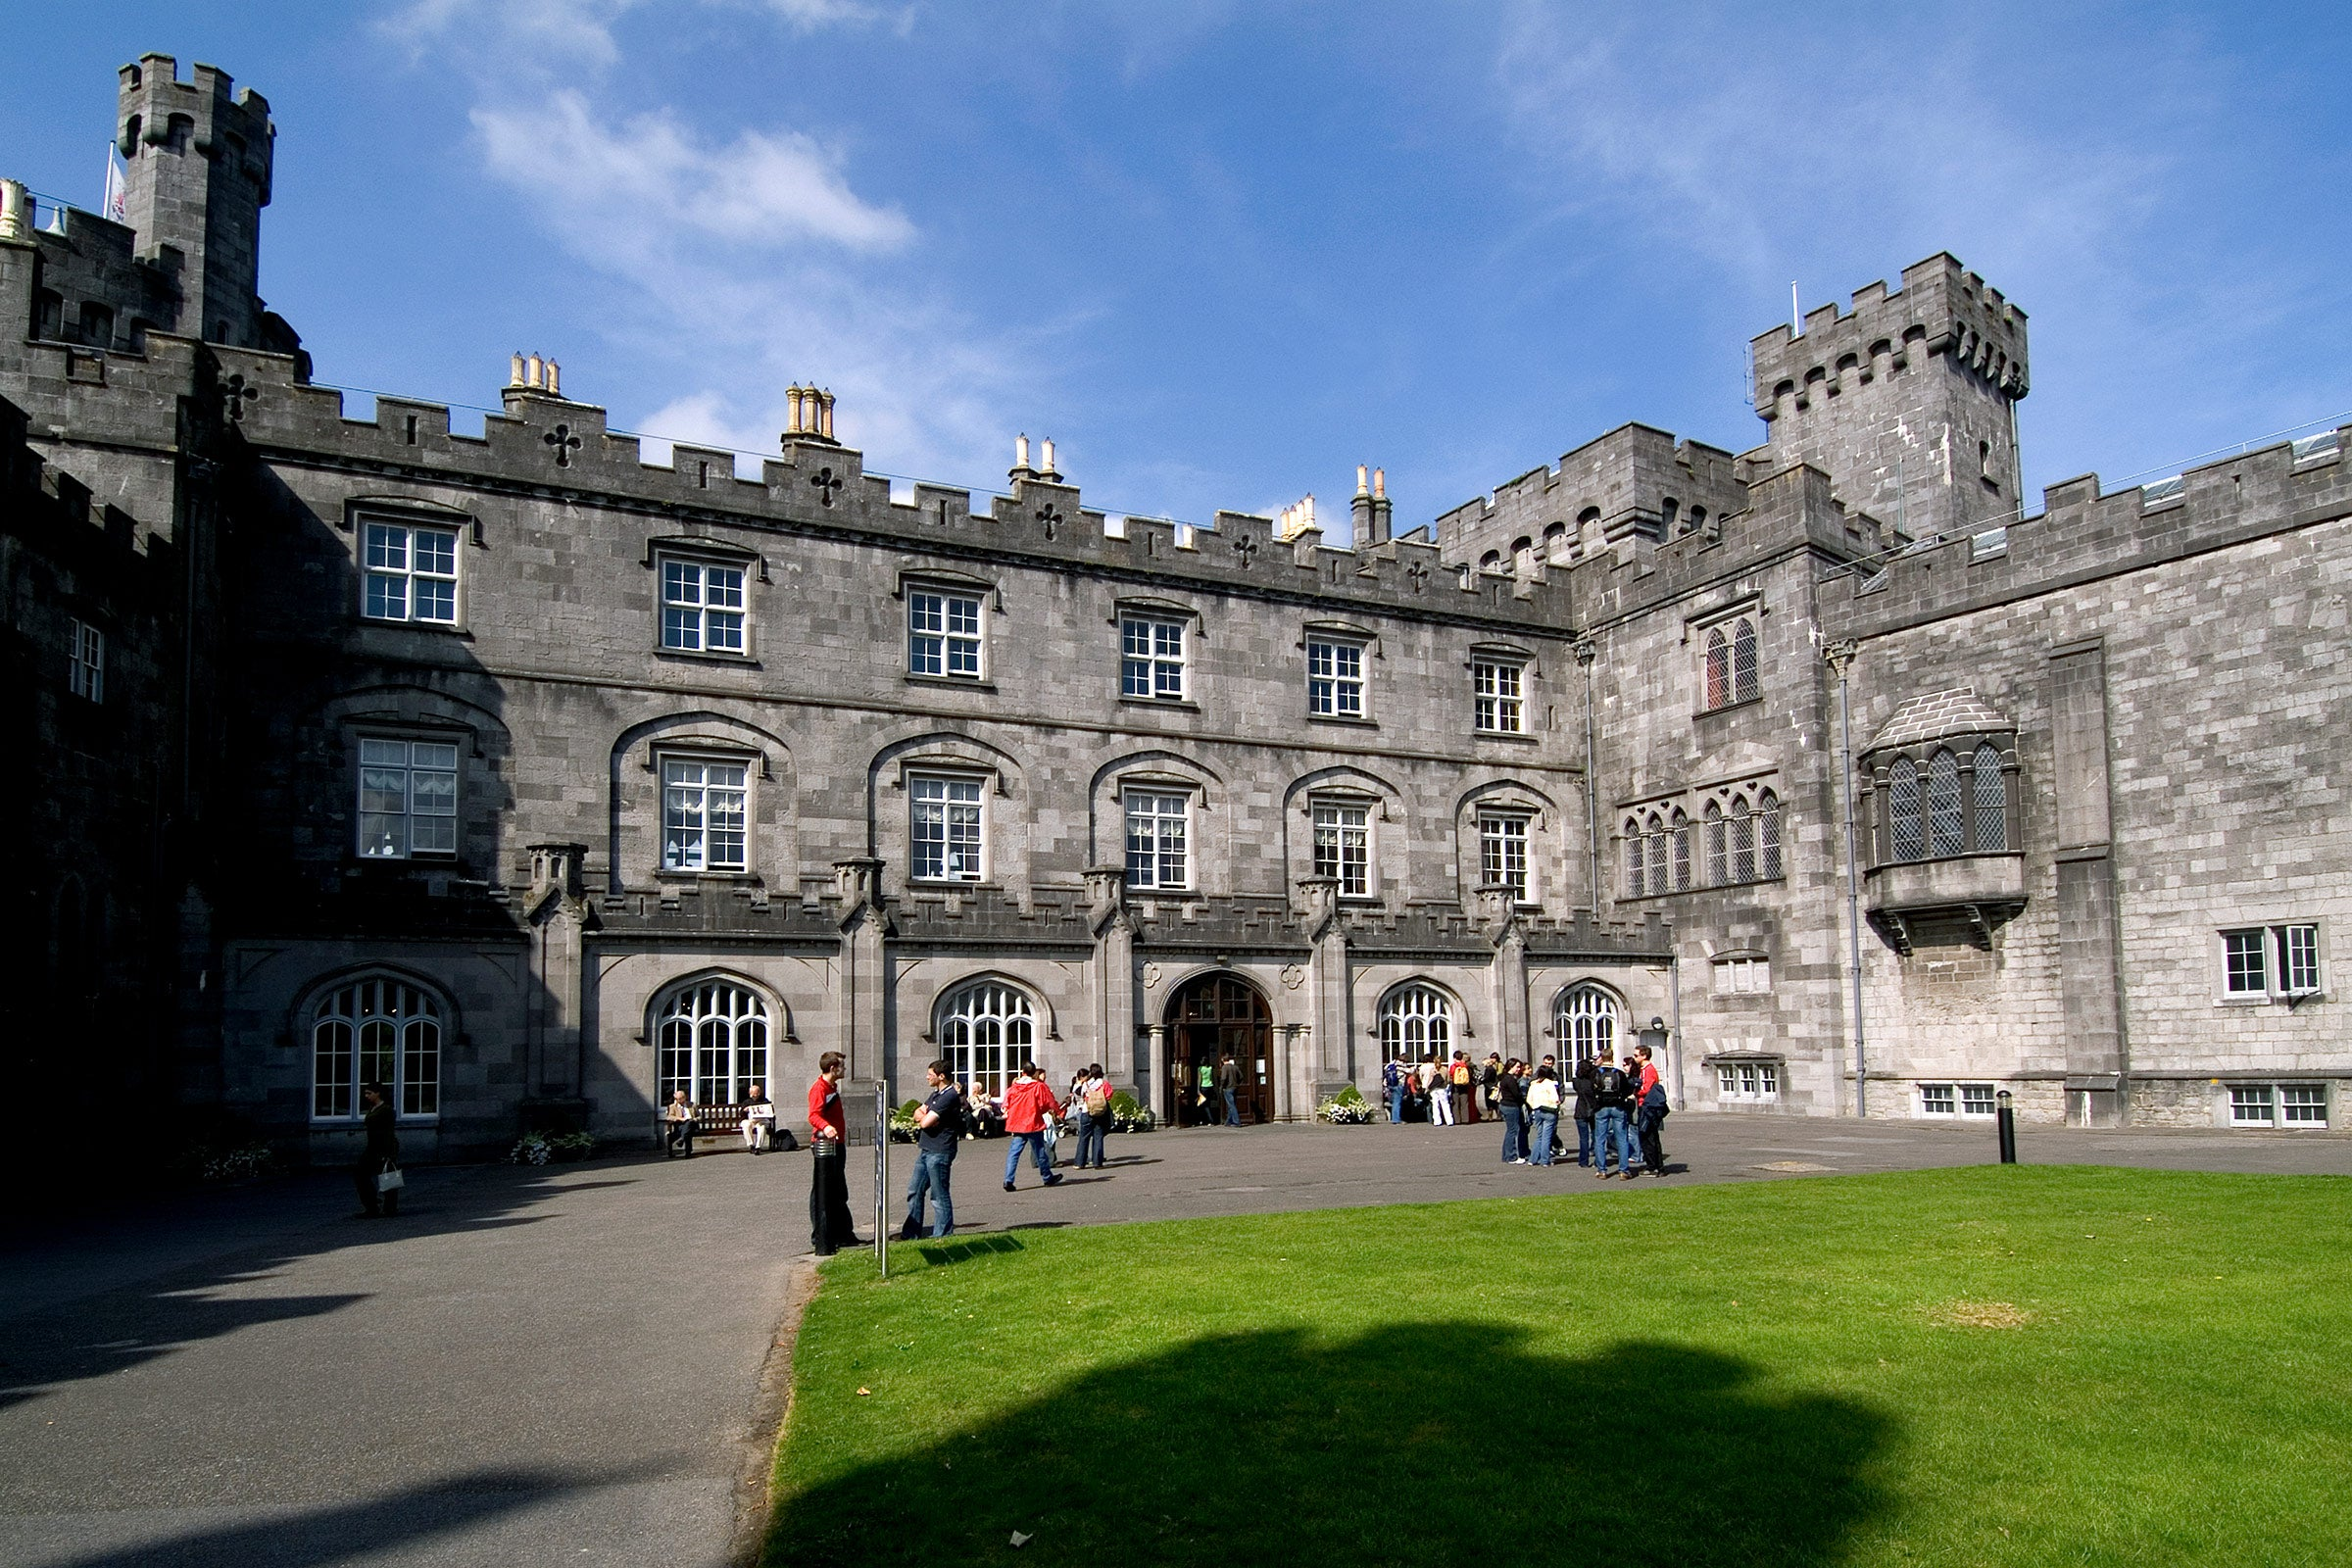 People exploring the grounds of Kilkenny Castle